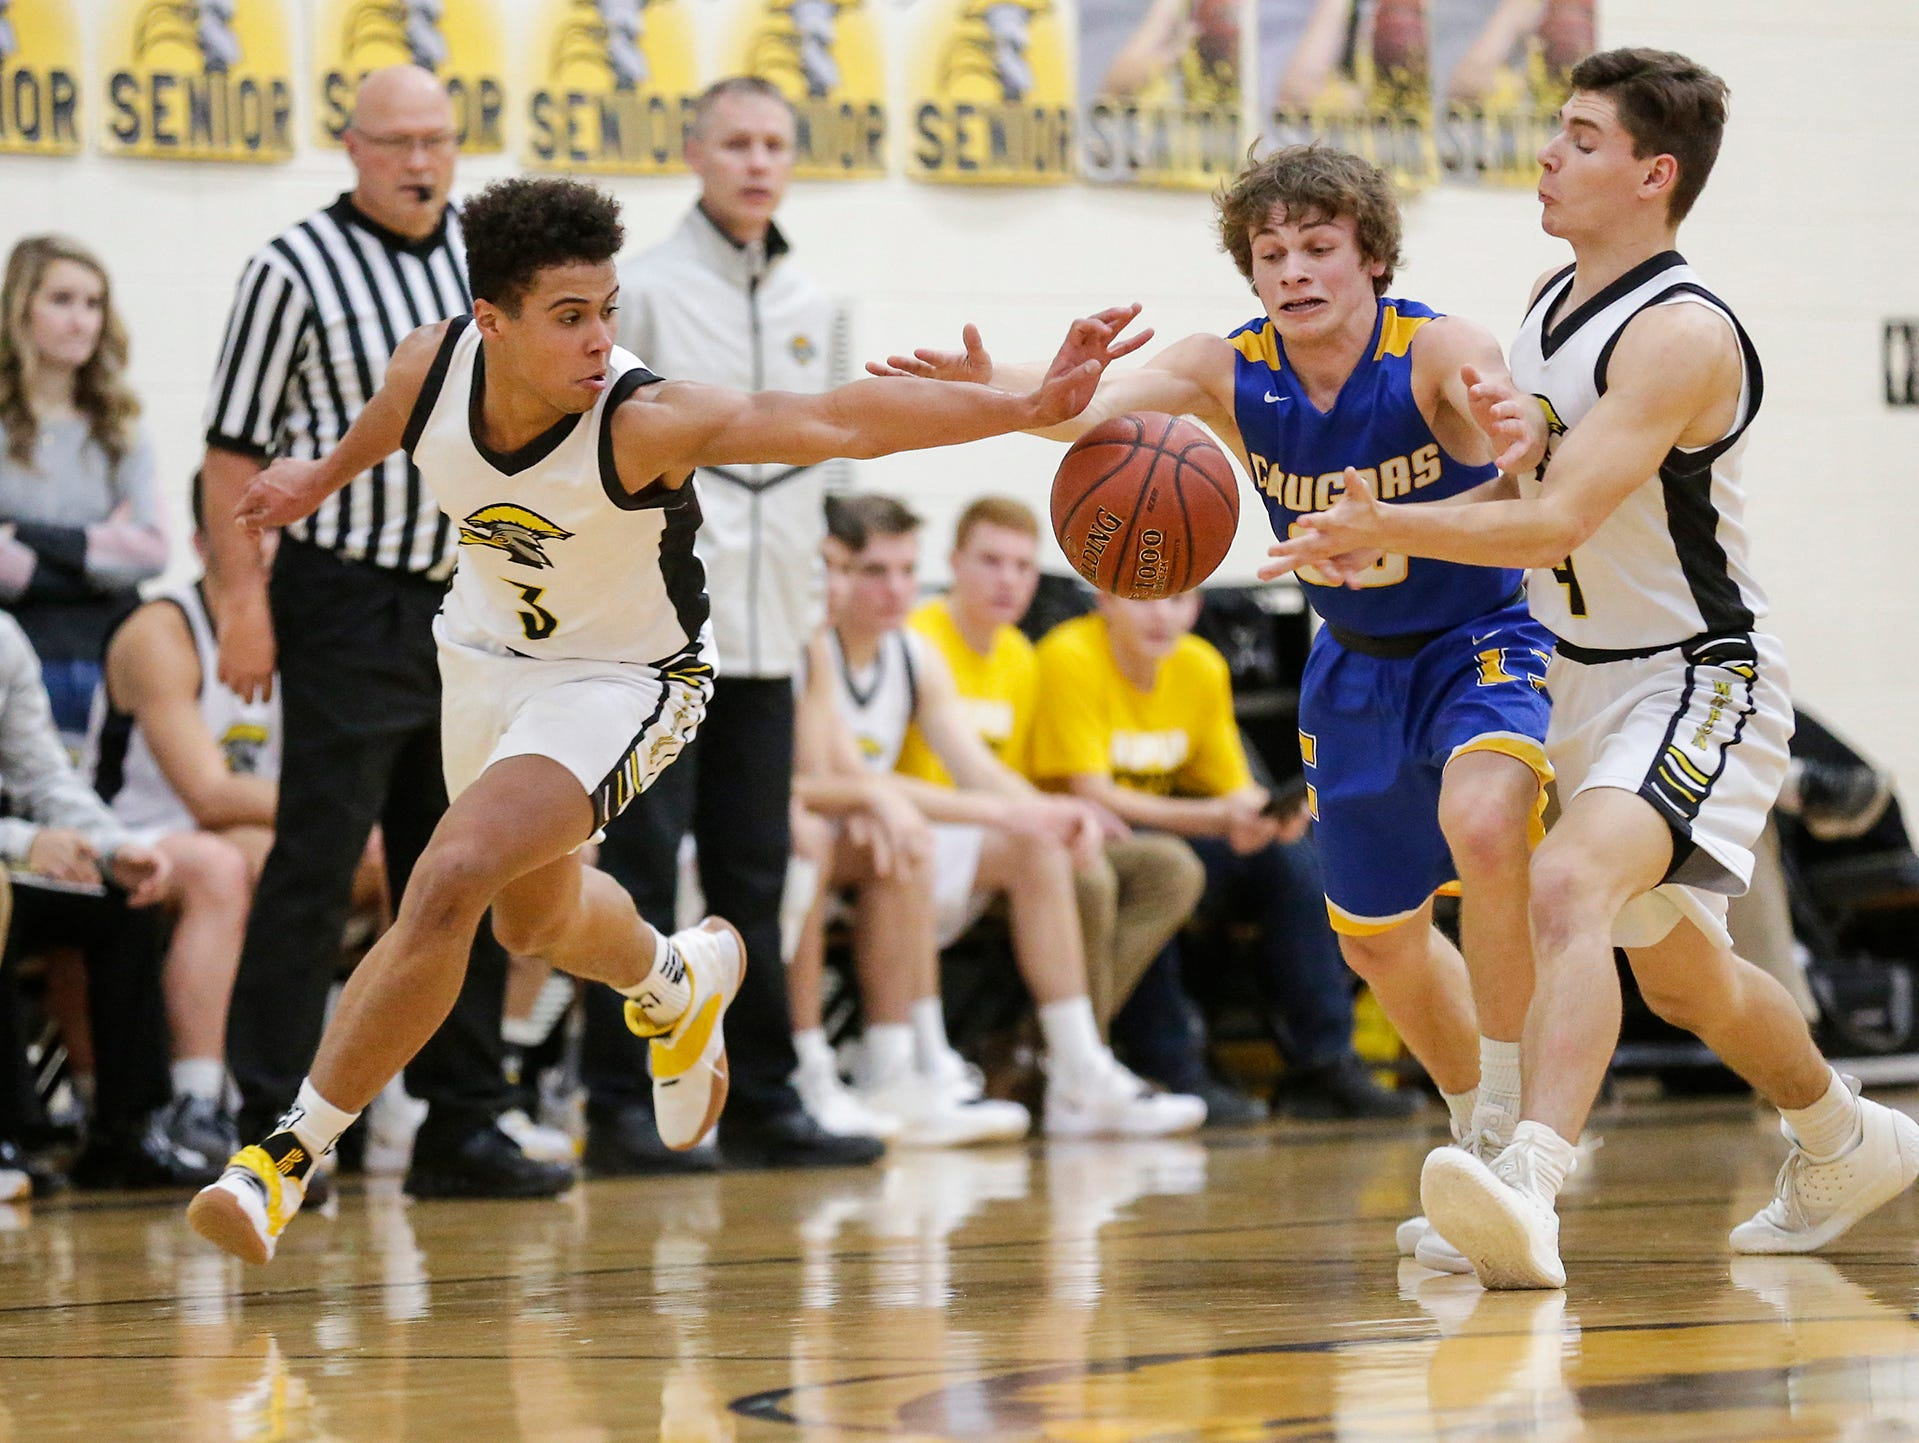 Waupun High School boys basketball's Quintin Winterfeldt (3) and Benet Veleke (4) battle for a loose ball with Campbellsport High School's Jacob Johnson during their game Friday, December 14, 2018 in Waupun. Waupun won the game 64-33. Doug Raflik/USA TODAY NETWORK-Wisconsin